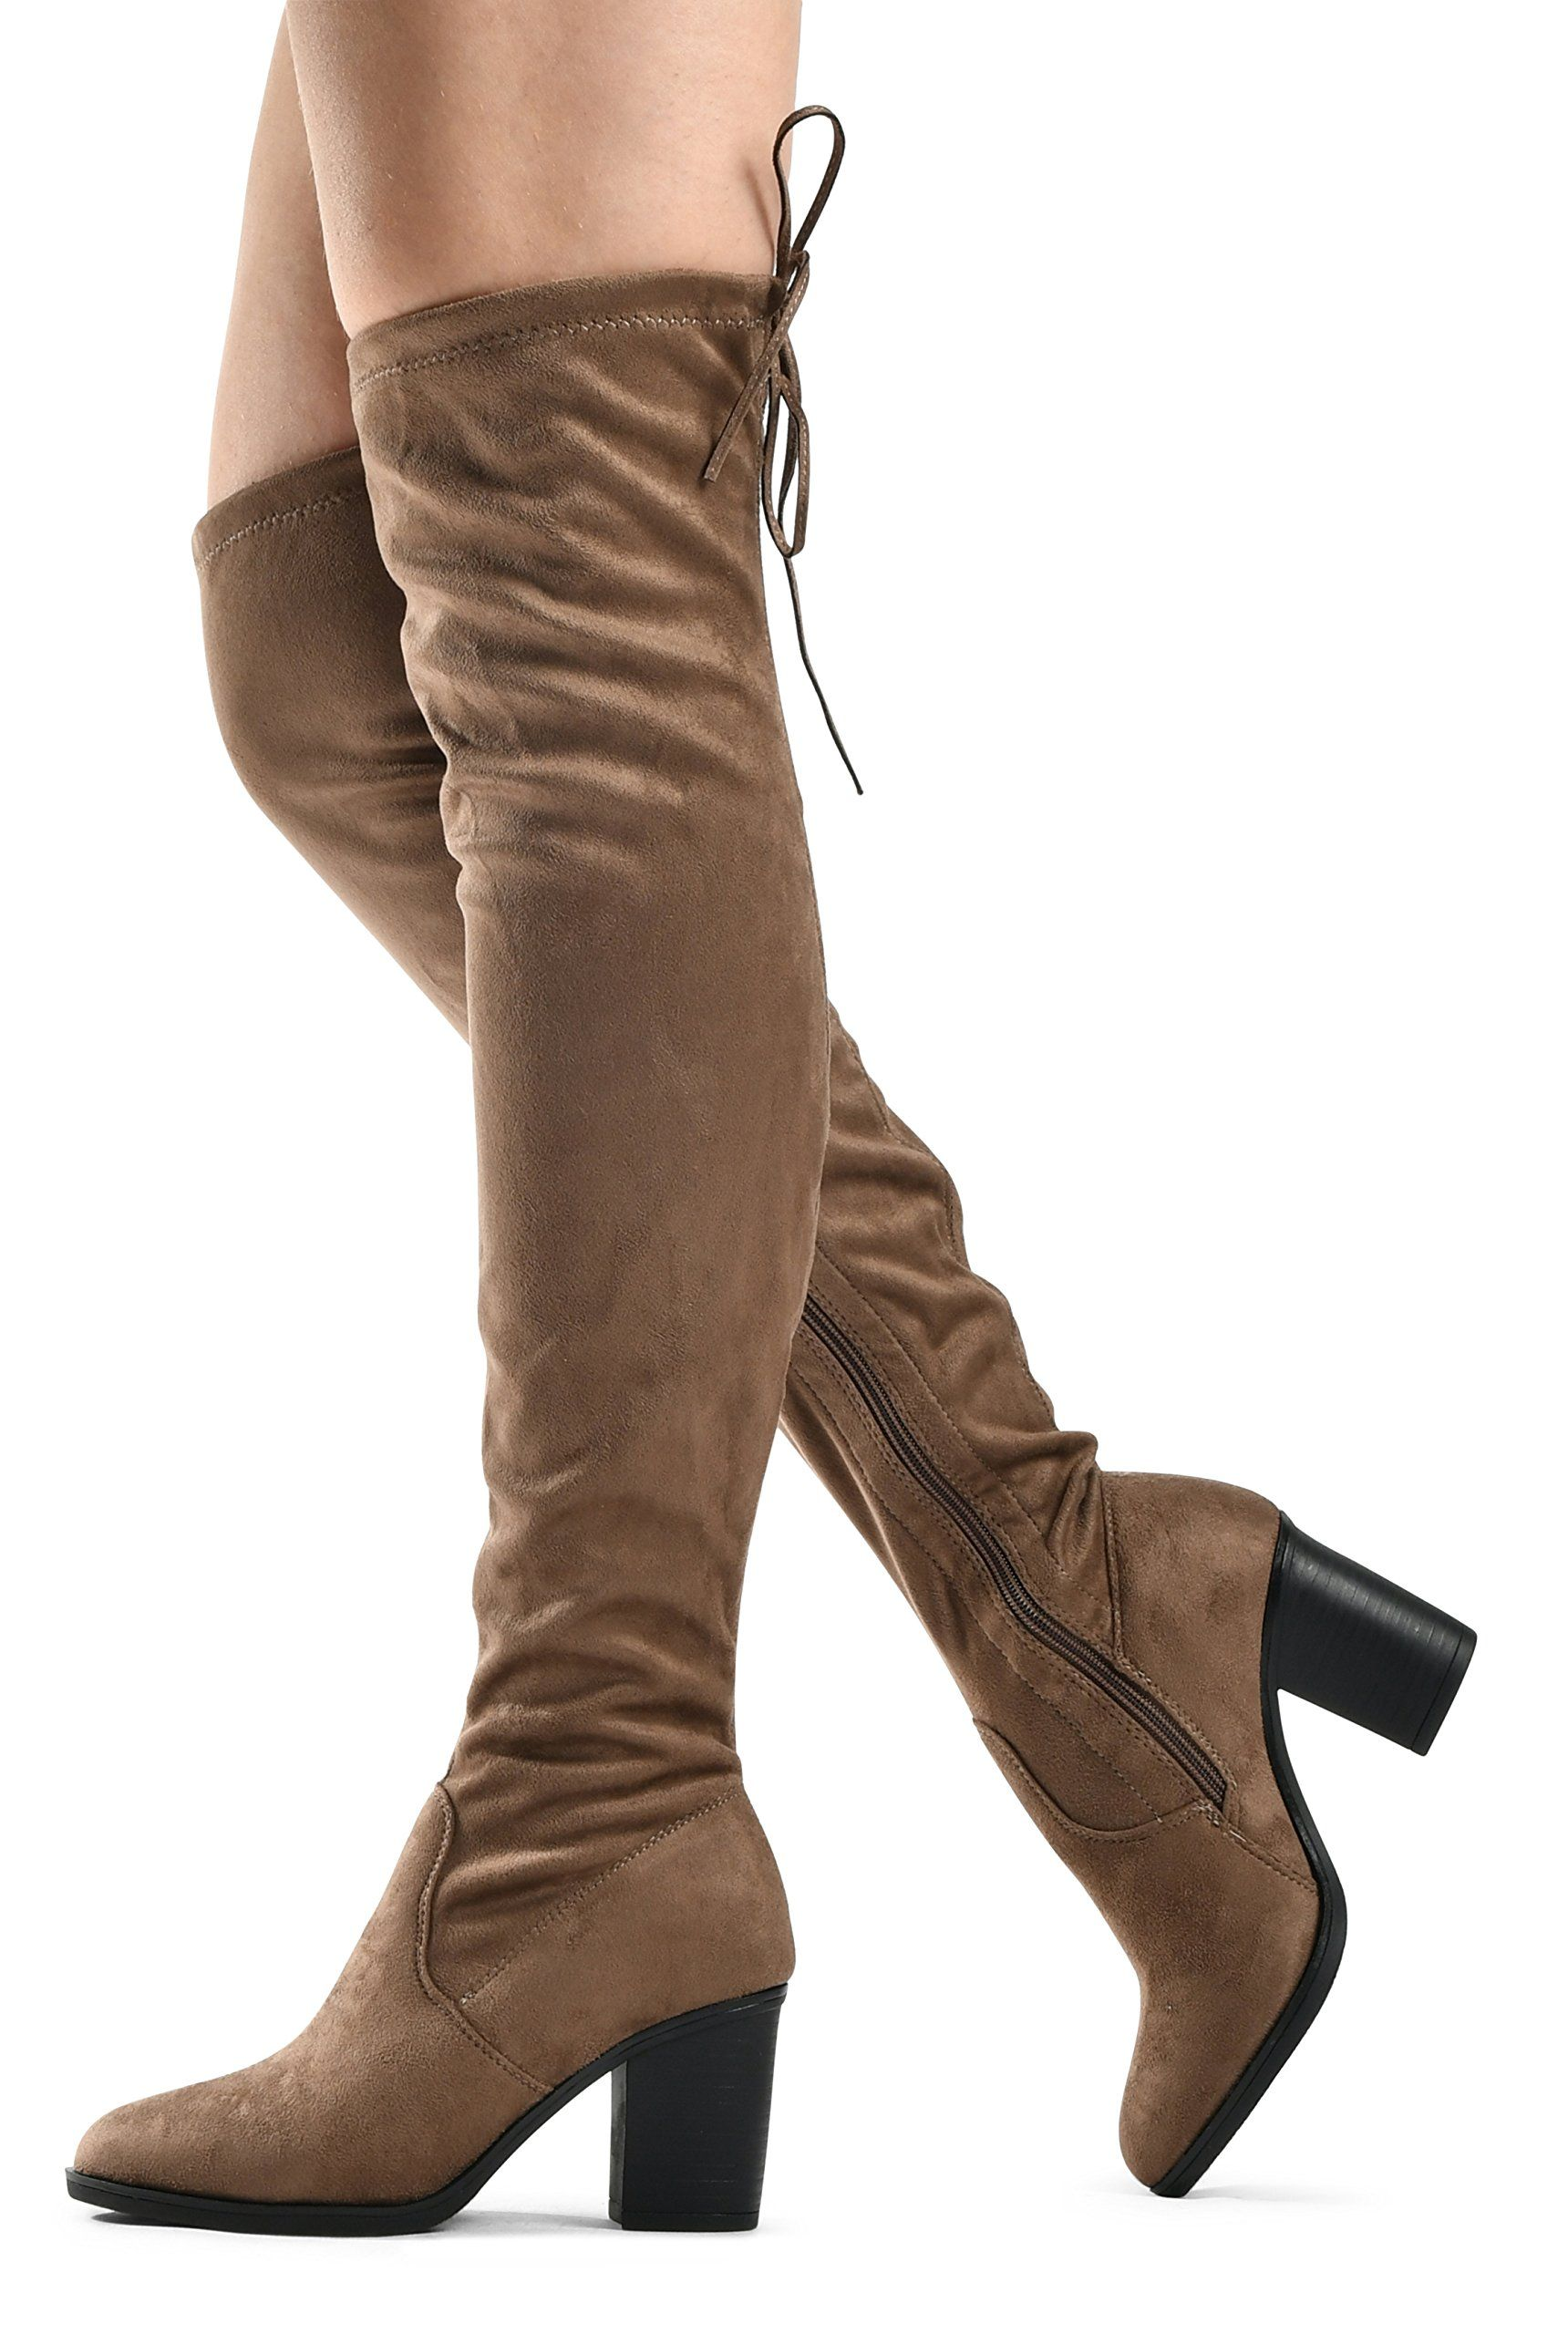 653a5b553e1 Womens Over The Knee Verona Low Stacked Block Chunky Heel Pointy ...